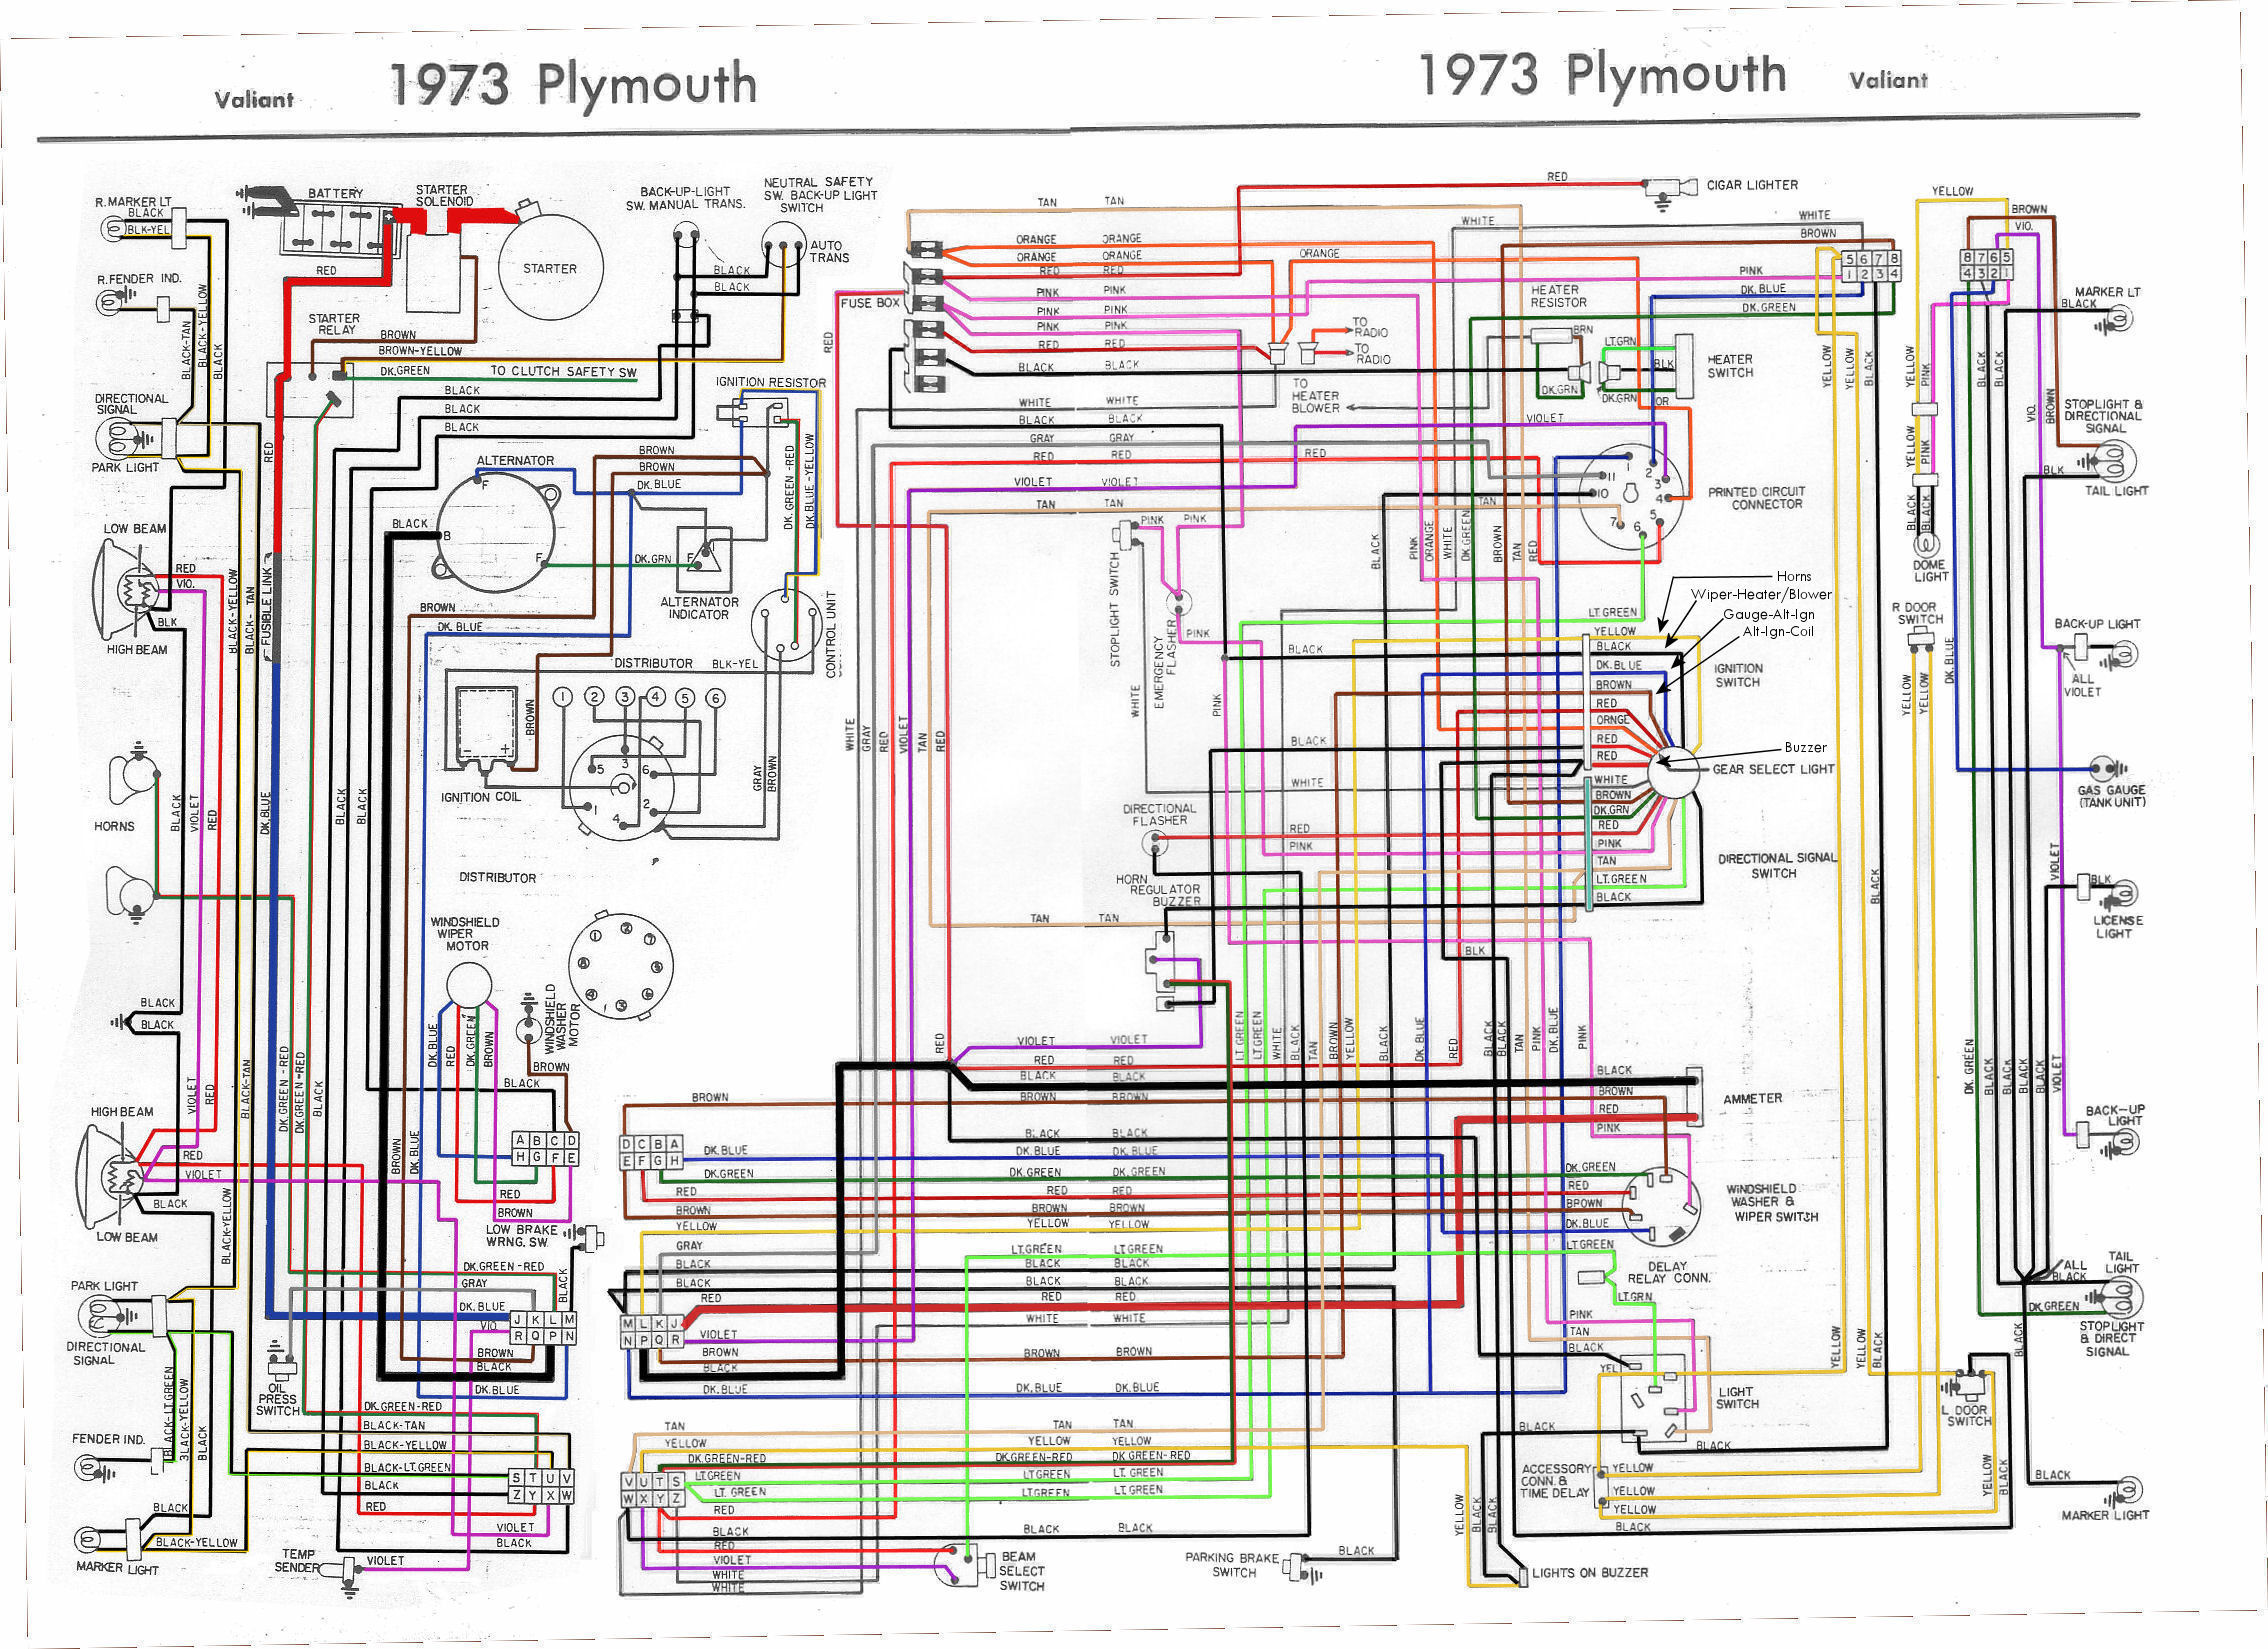 Plymouth Engine Cooling Diagram : Plymouth barracuda wiring diagram